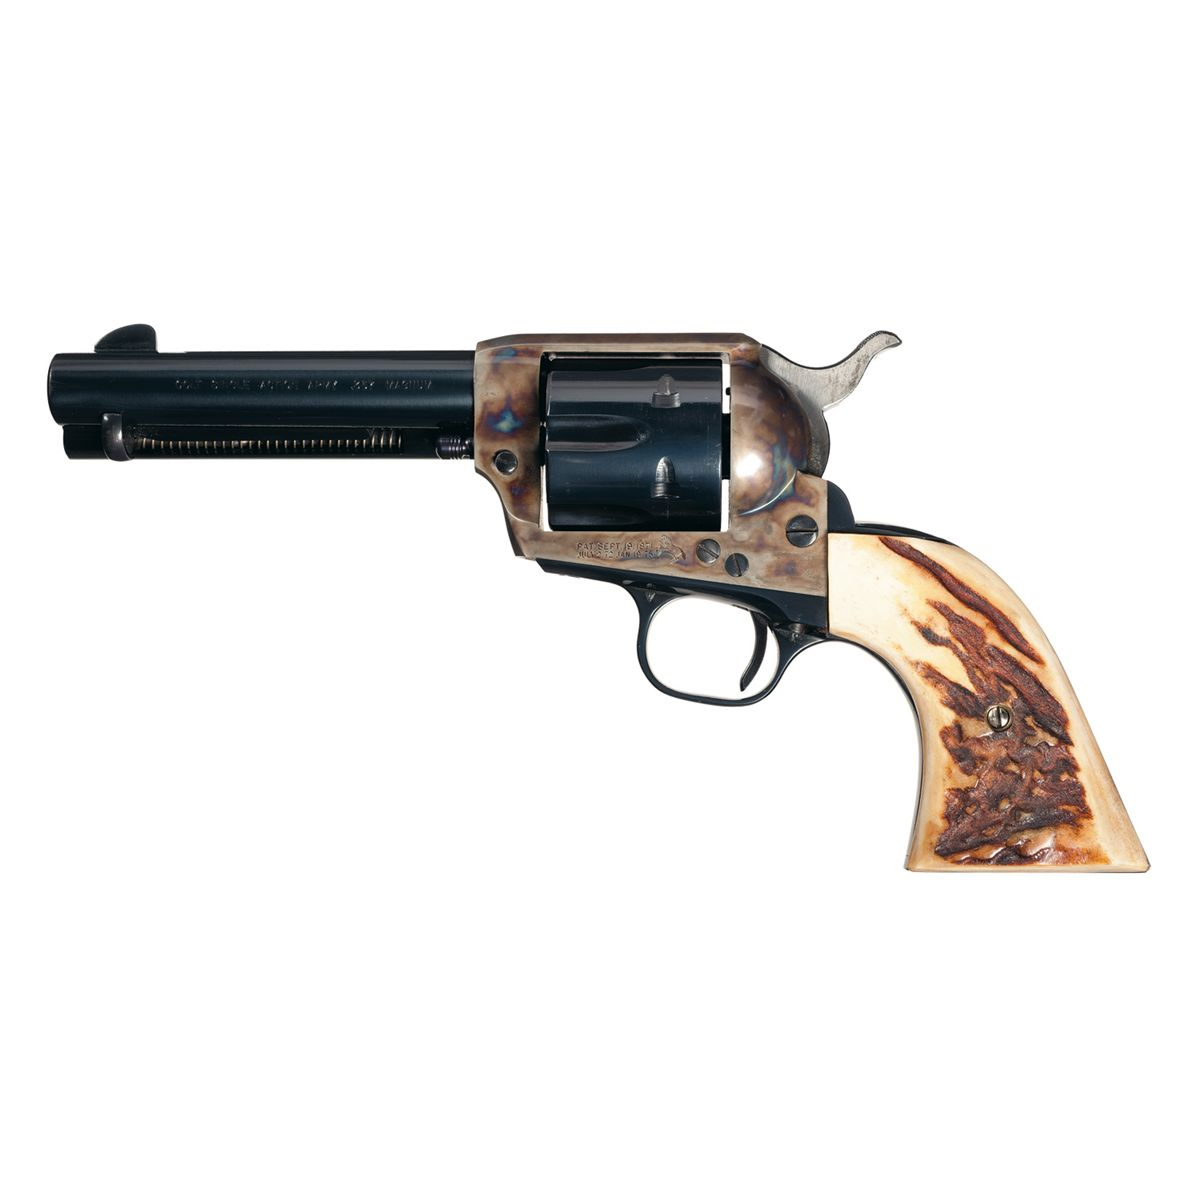 Excellent Colt Second Generation Single Action Army Revolver in 357 Magnum  with Stag Grips